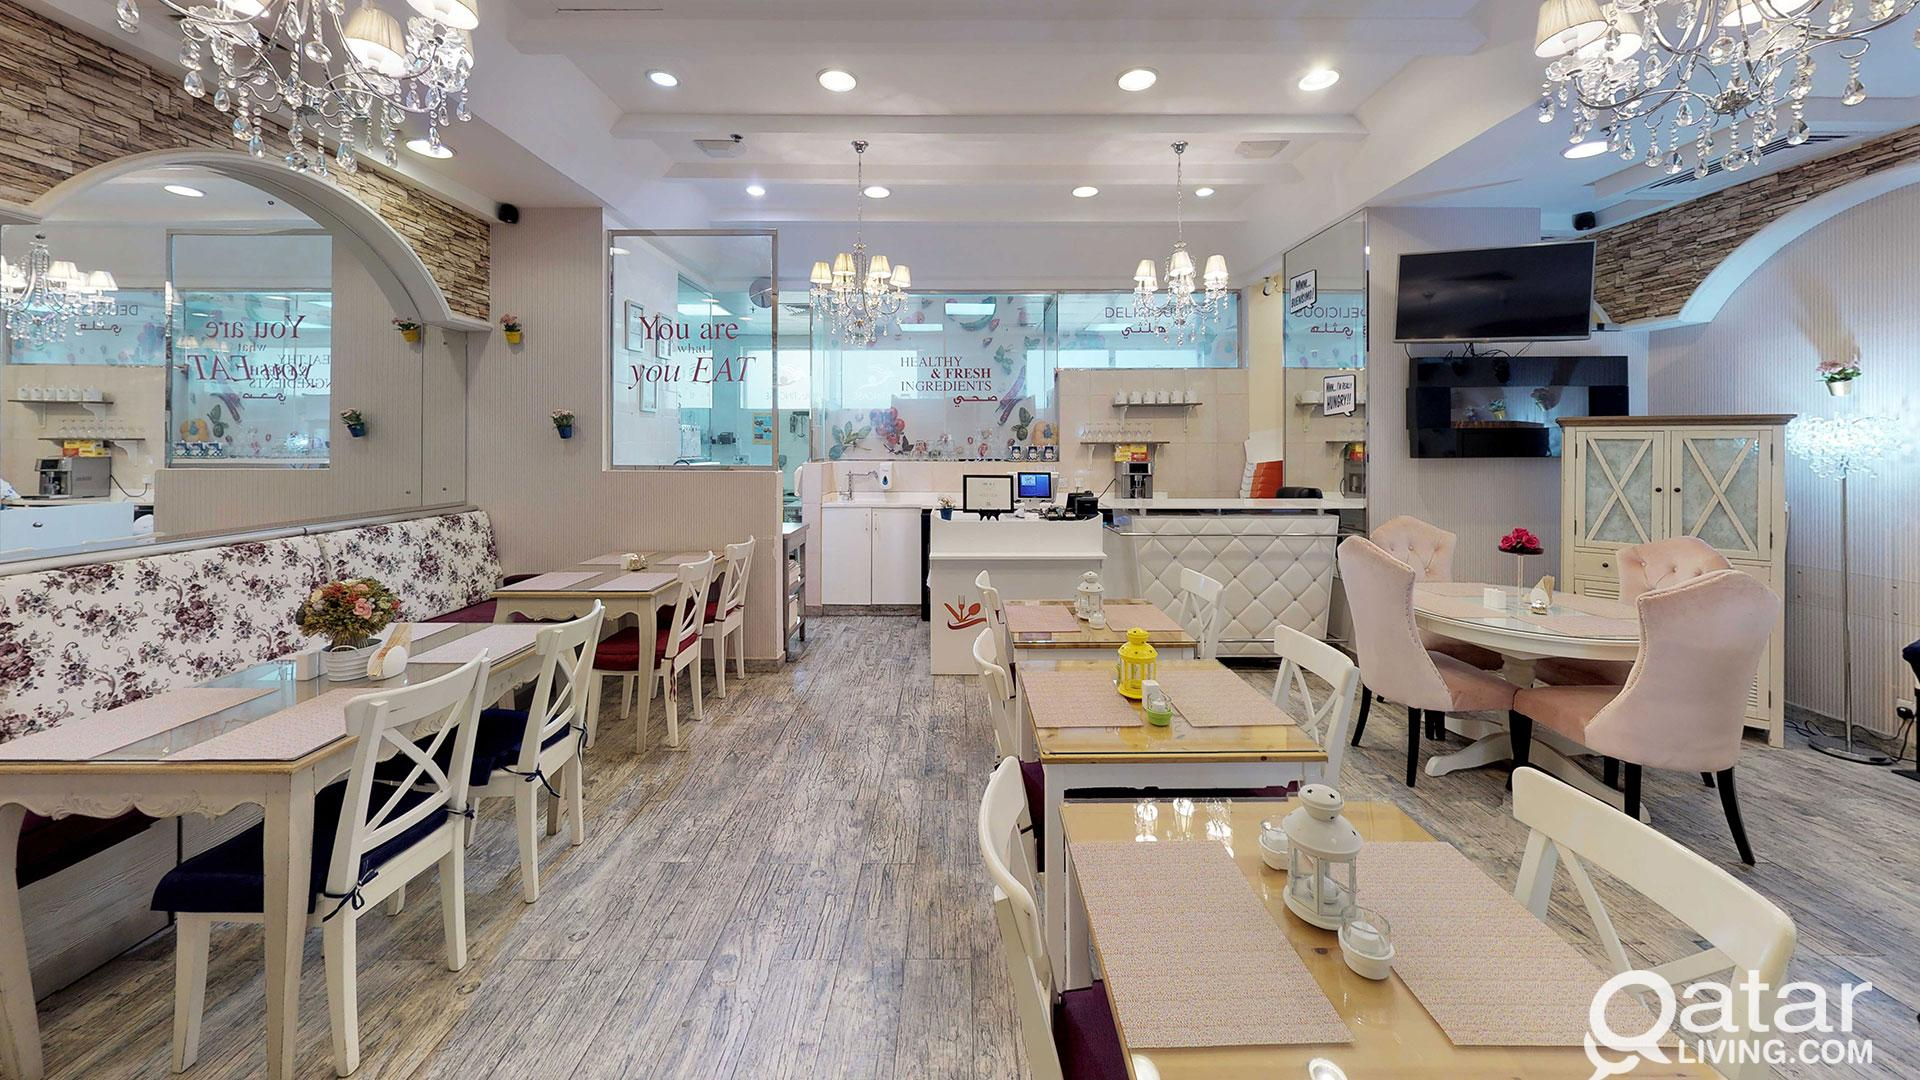 LUXURIOUS 4BHK FURNISHED APART IN WESTBAY WITH UTI